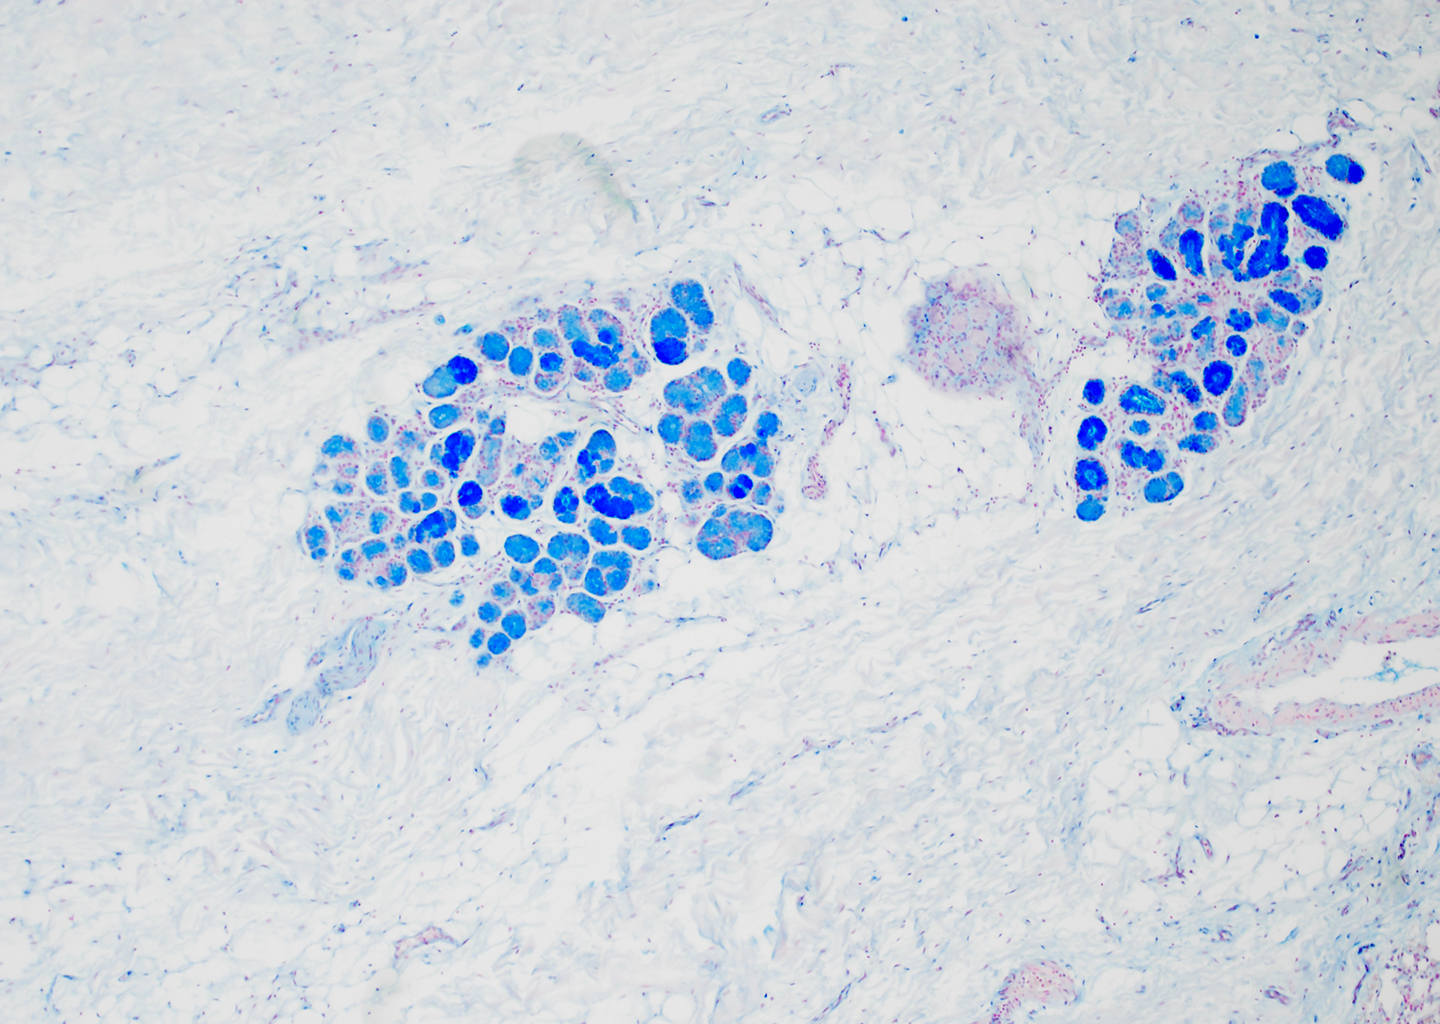 Alcian Blue Staining of 29 Year-Old Human Donor D175-10C3.21